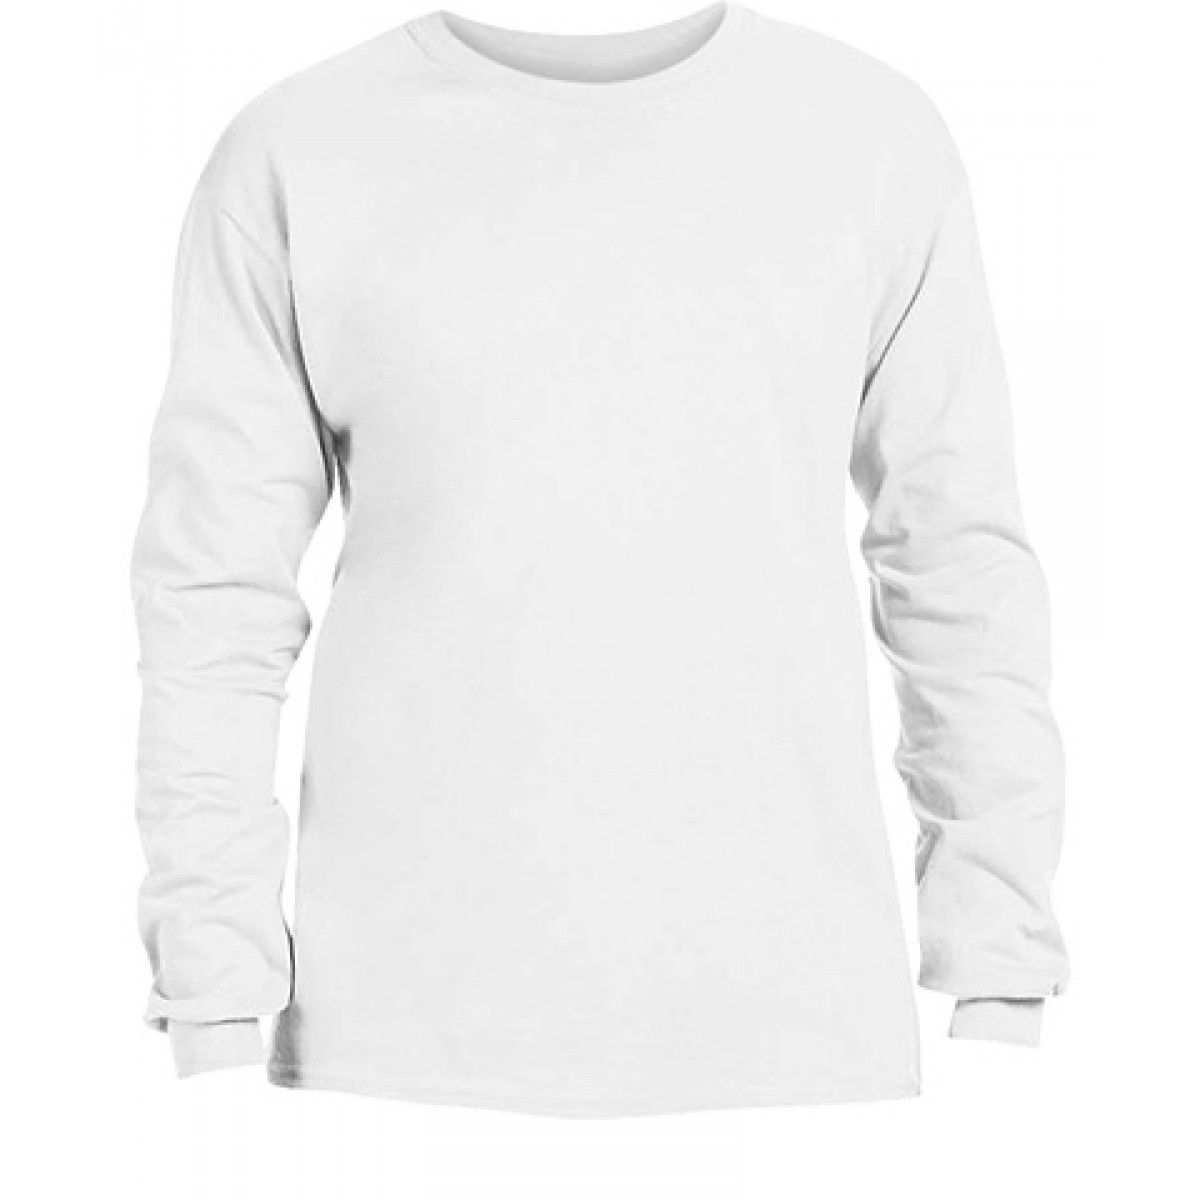 Adidas Long Sleeve T-shirt With Adidas logo-White-XL